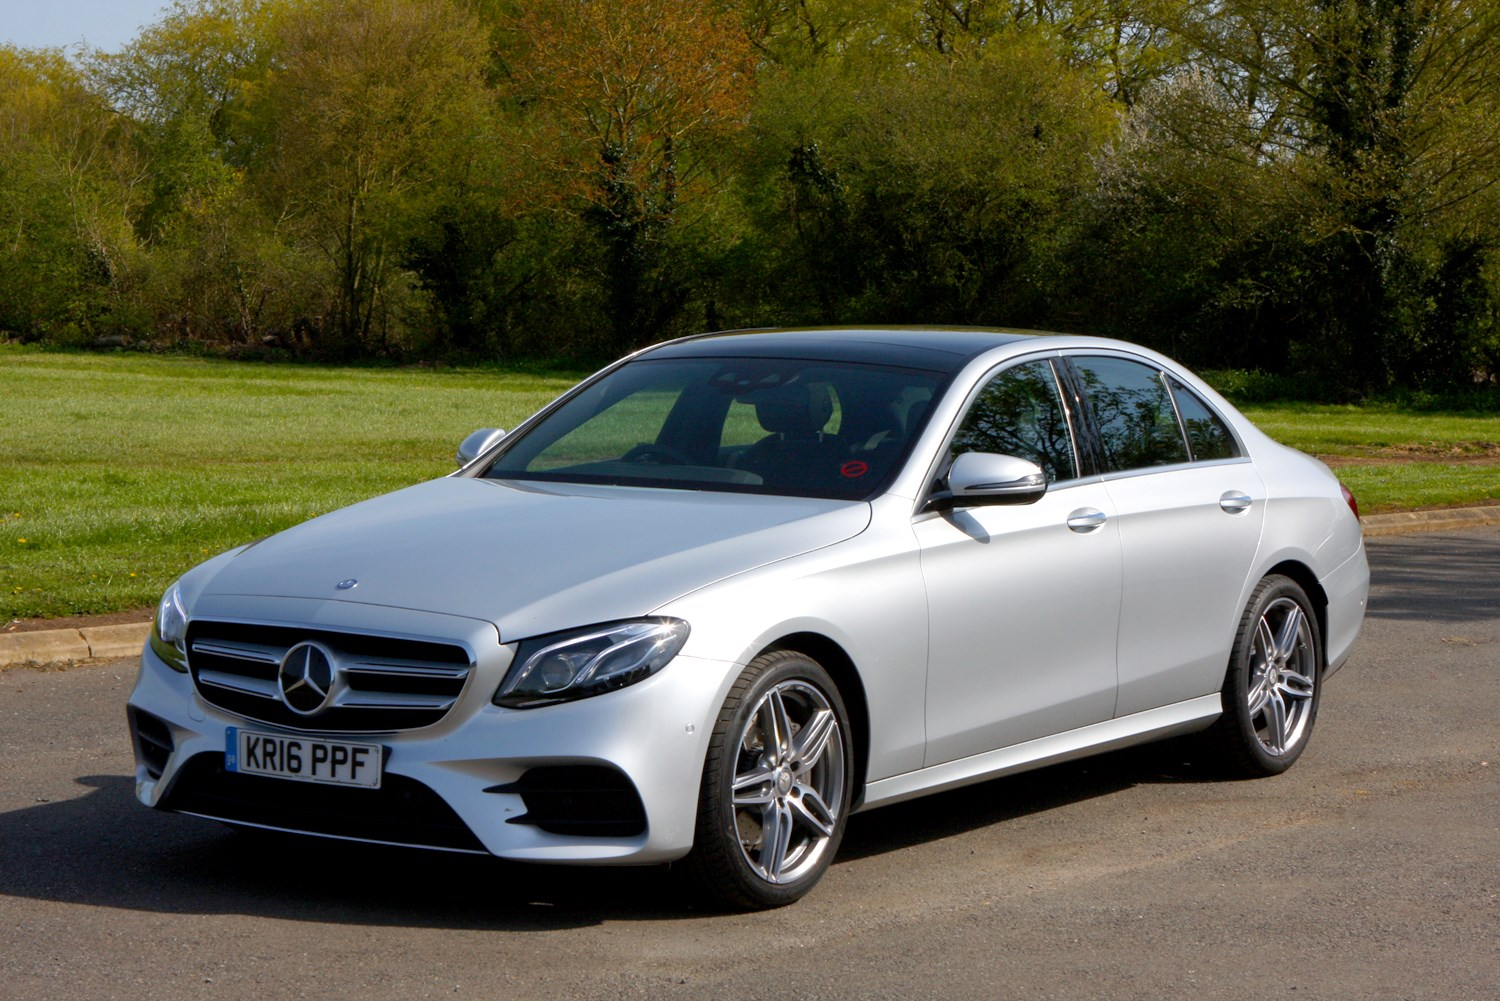 Mercedes-Benz E-Class (2019) MPG, Running Costs, Economy & CO2 | Parkers